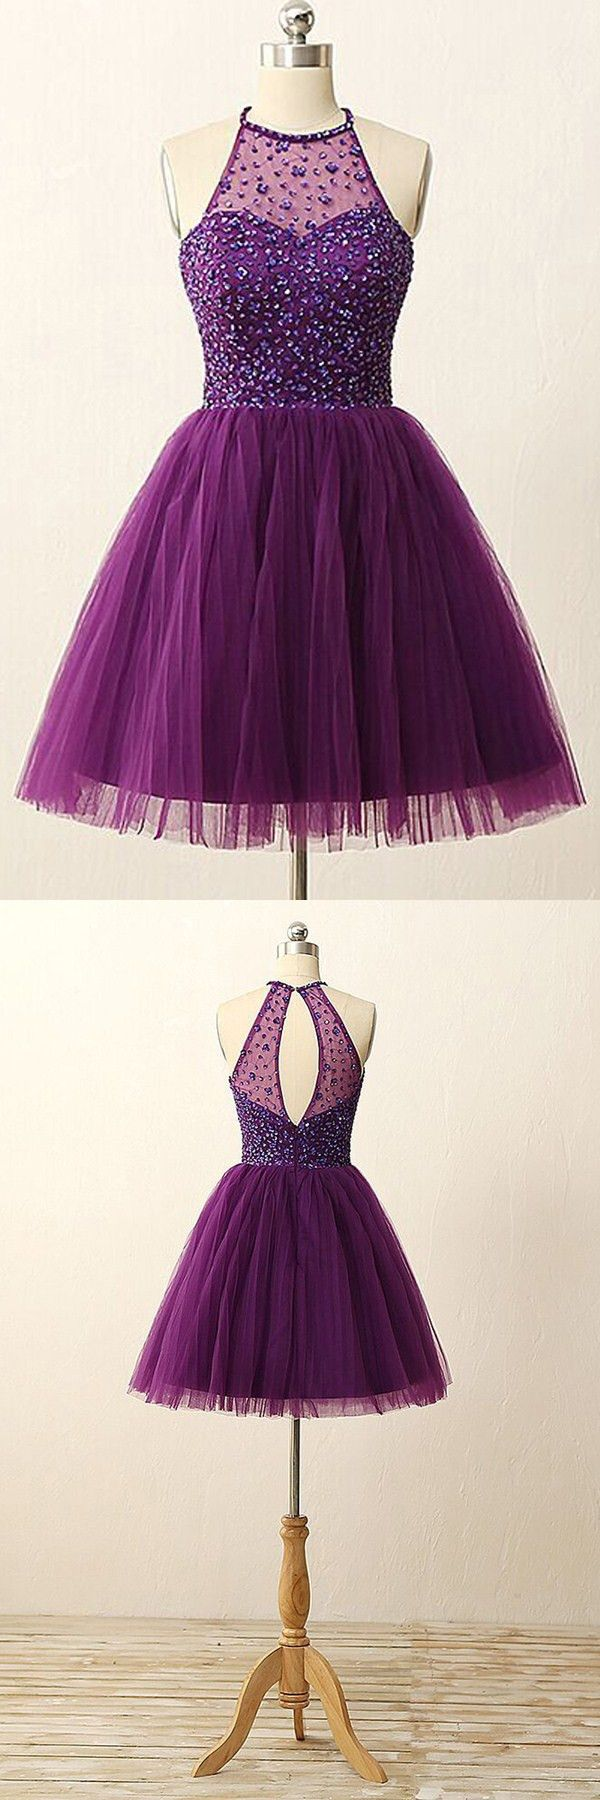 2016 homecoming dresses,homecoming dresses,halter homecoming dresses,purple…